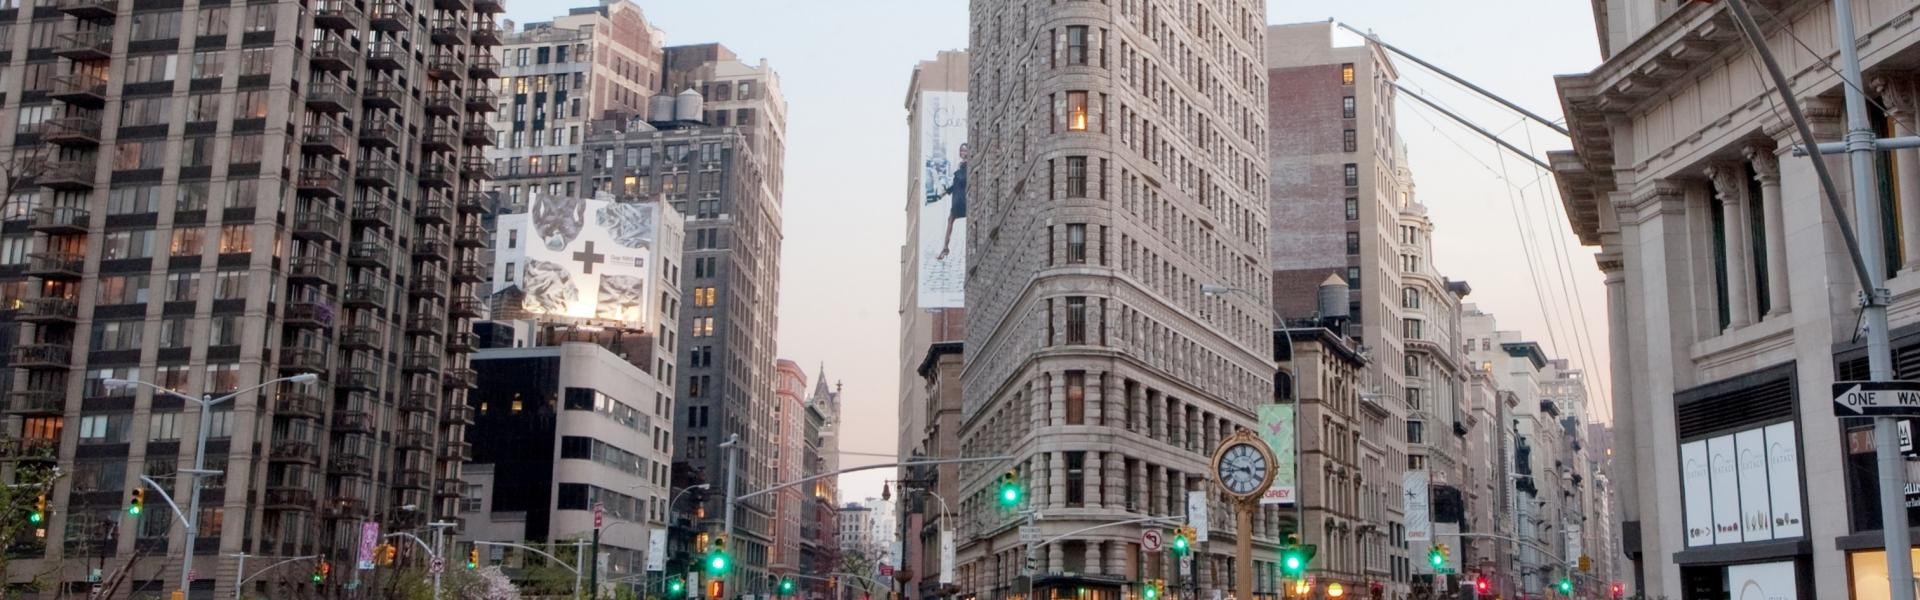 Flatiron-Building-Flatiron-Manhattan-NYC-Will-Steac